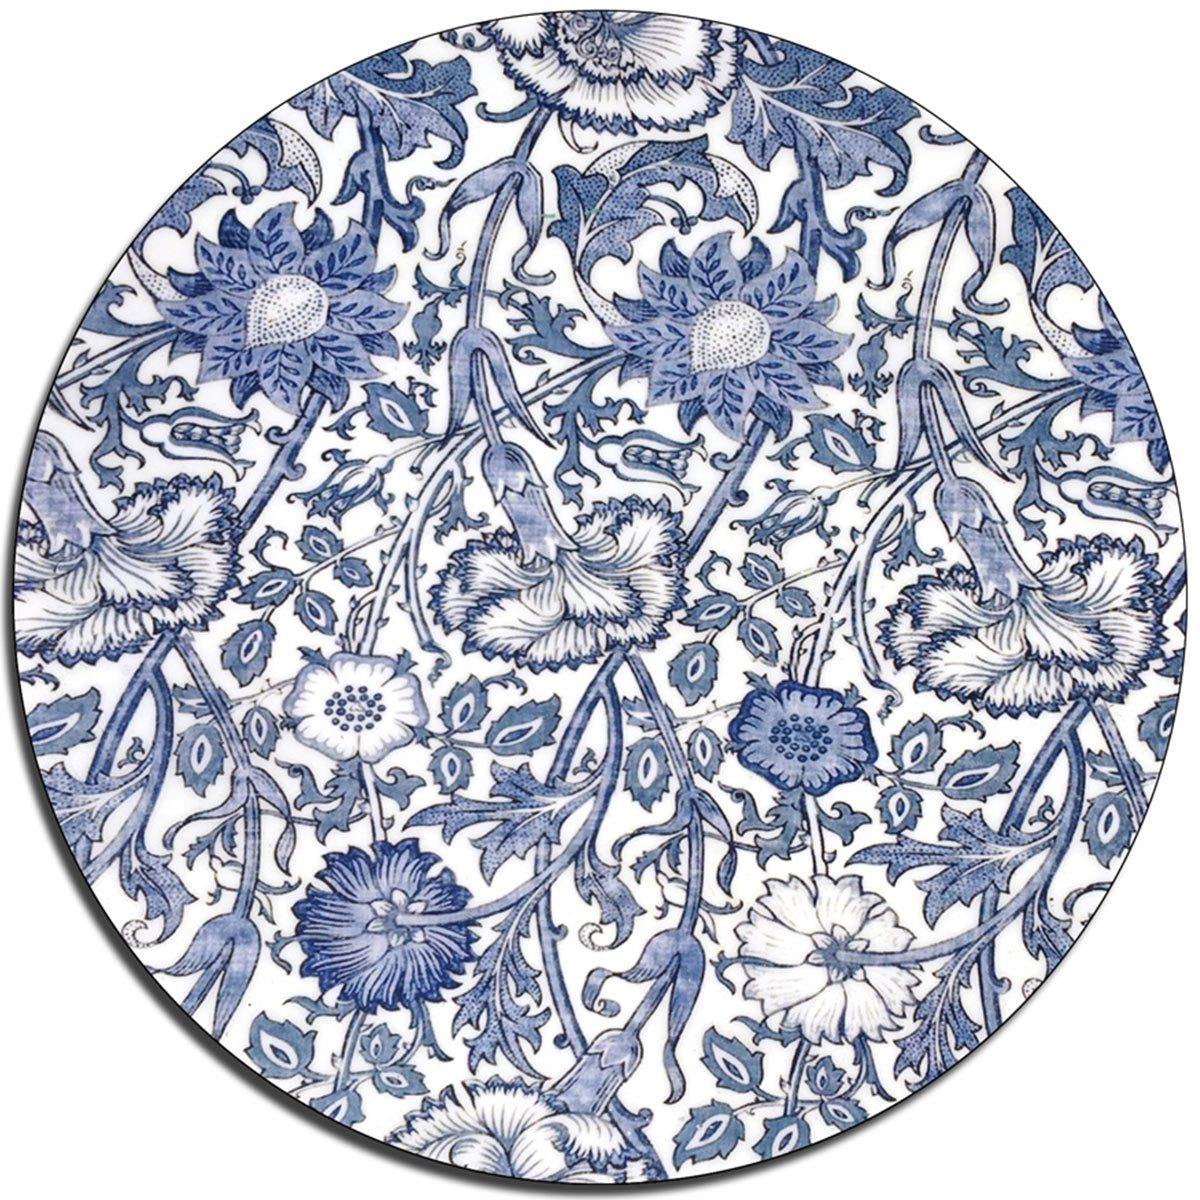 Cornflower Blue Glass Platter - club matters